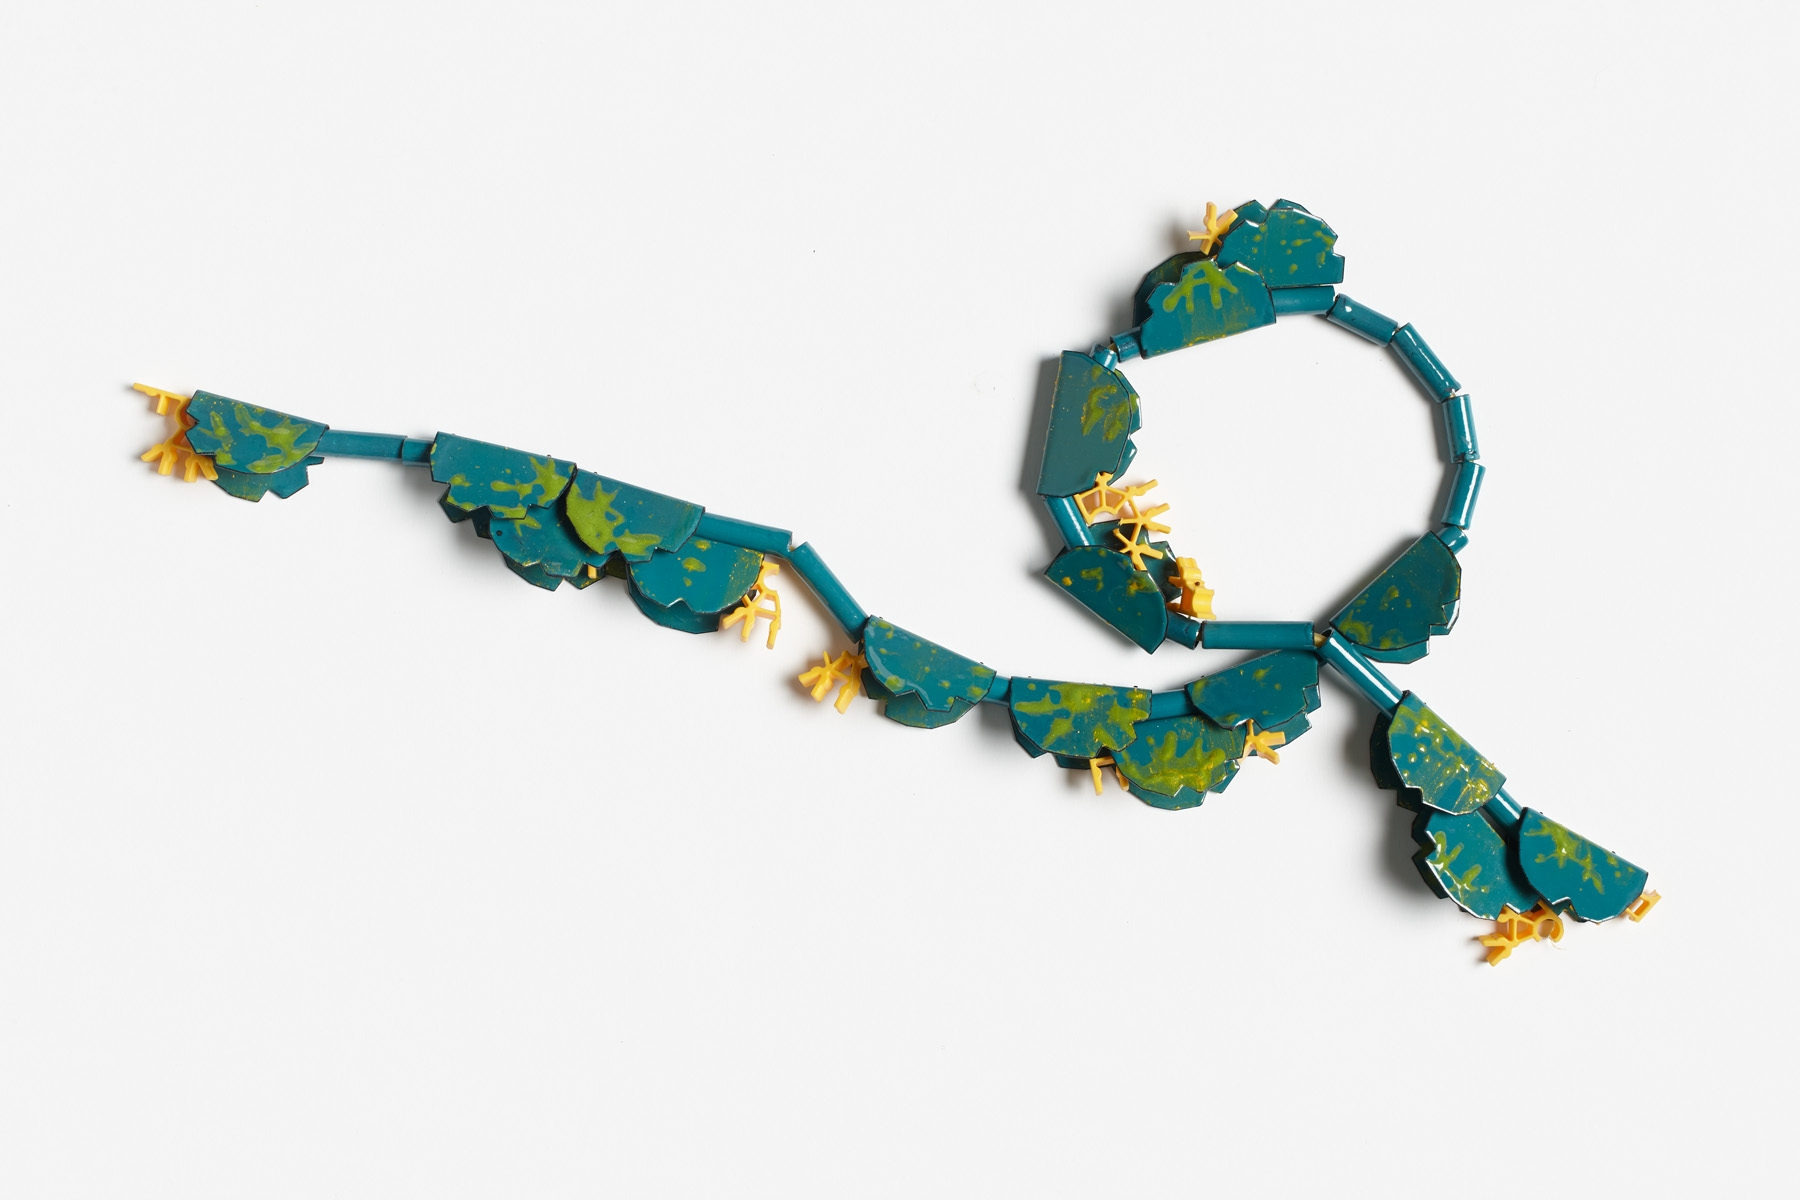 Seasnake , 2013.   Deconstructed K'nex parts, mild steel, enamel, rubber thread.  Photo by Jeremy Dillon.